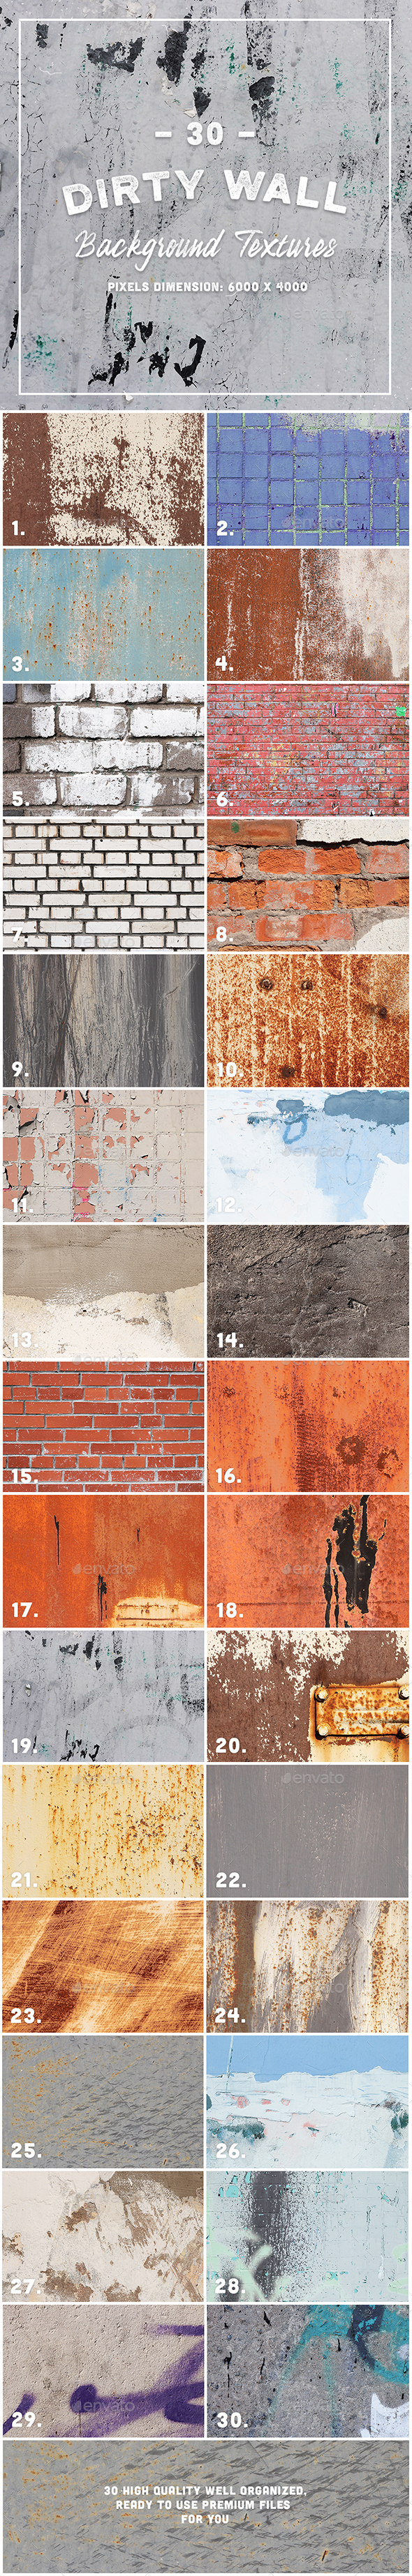 30 Dirty Wall Background Texture - Industrial / Grunge Textures